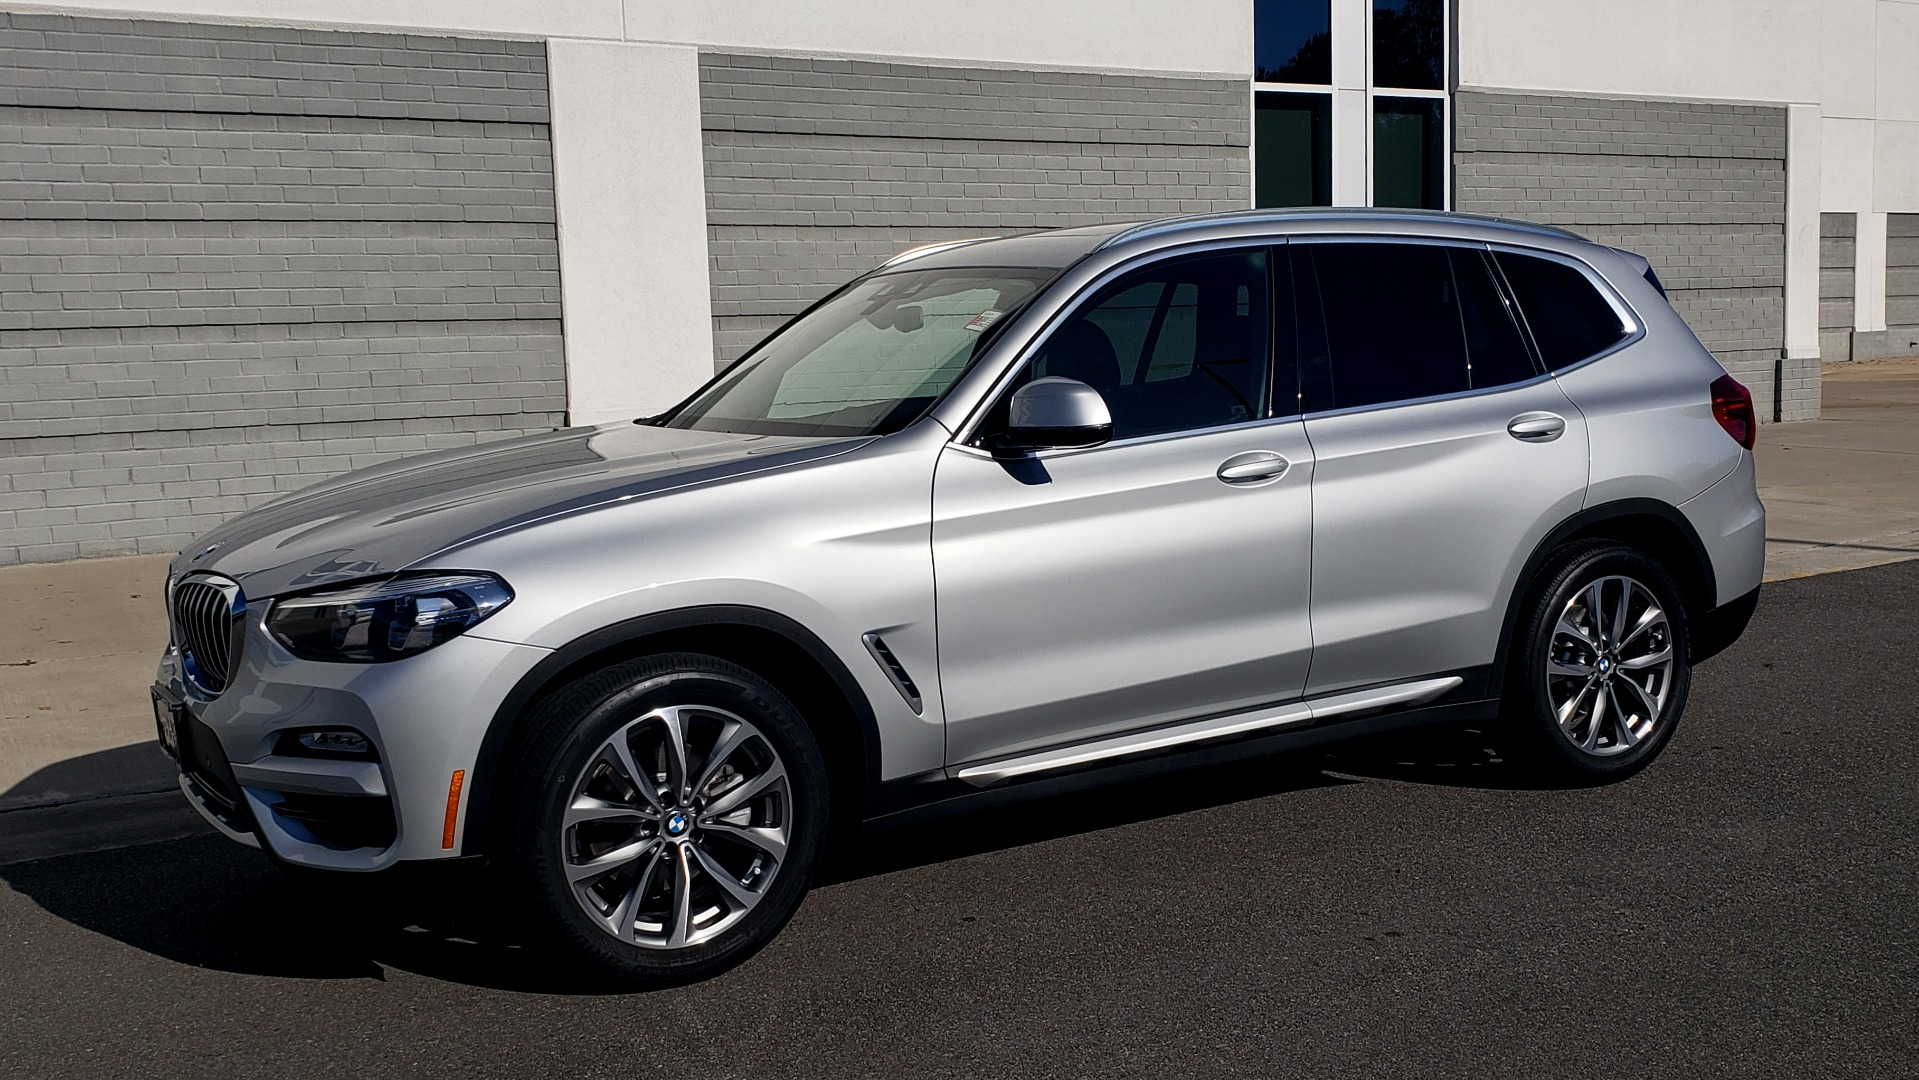 Used 2019 BMW X3 XDRIVE30I / DRVR ASST / PANO-ROOF / HTD STS / REARVIEW for sale $41,995 at Formula Imports in Charlotte NC 28227 3